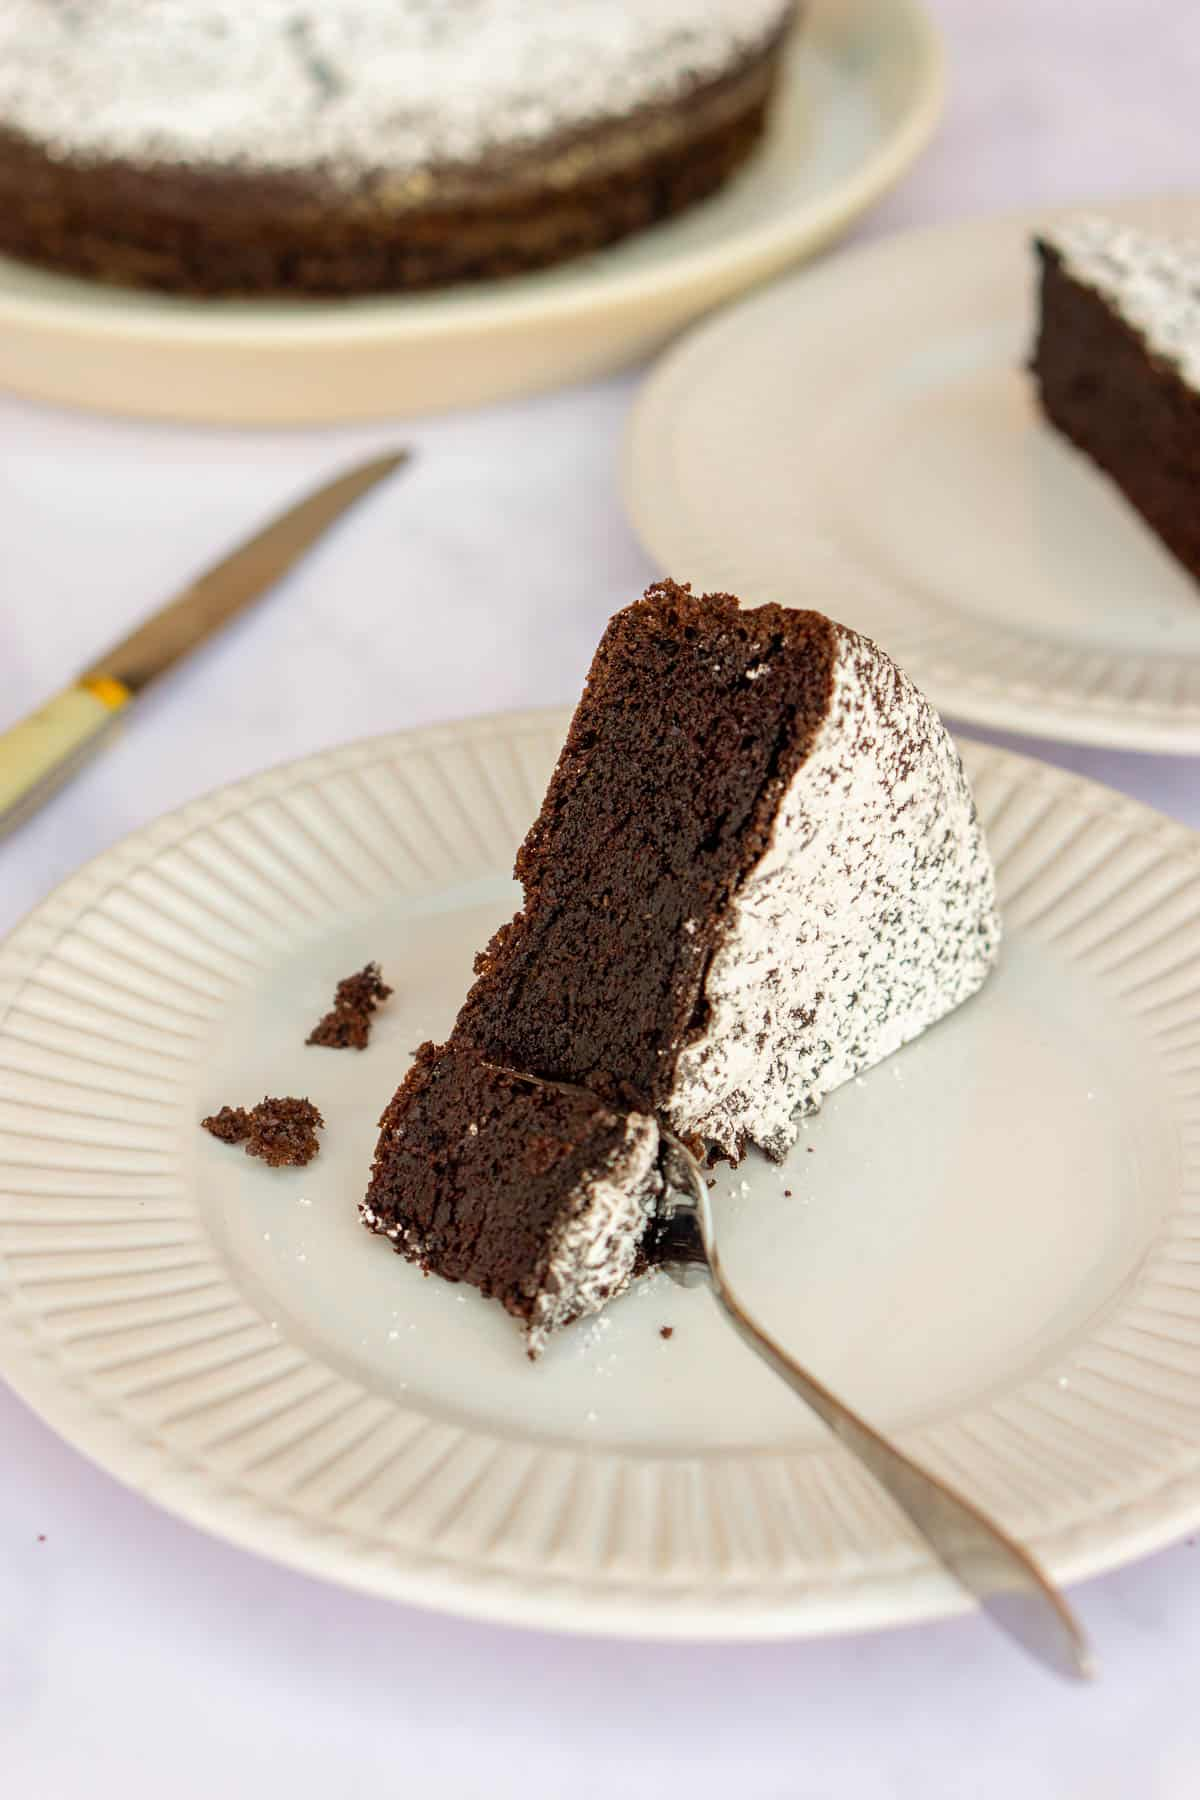 Slice of chocolate olive oil cake on a white plate with more cake in the background